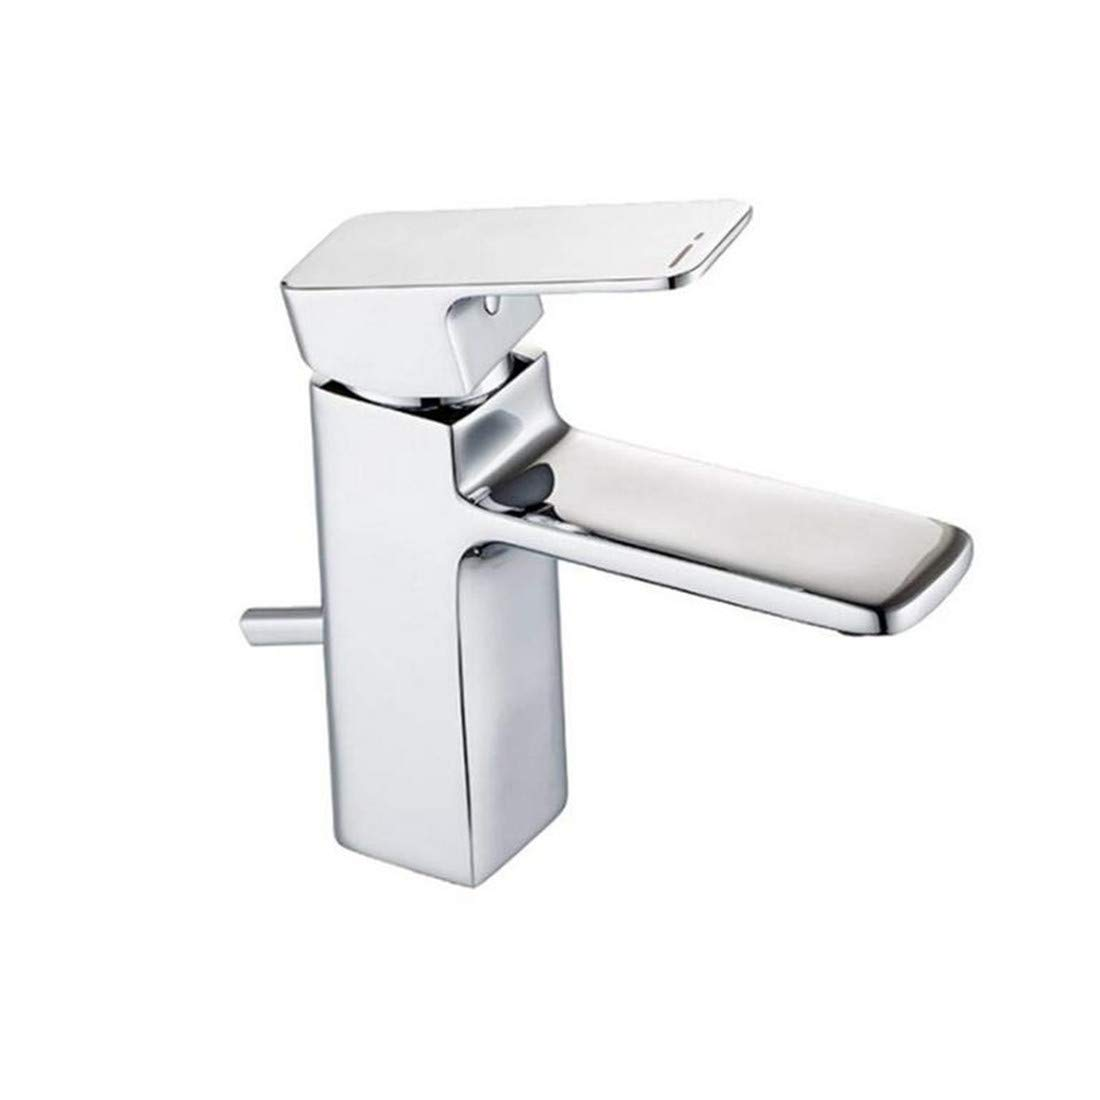 Hot and Cold Vintage Brass Bathroom Kitchen Bathroom Taps Single-Hole Basin Faucet Hot Water Table Top Basin Washbasin Faucet